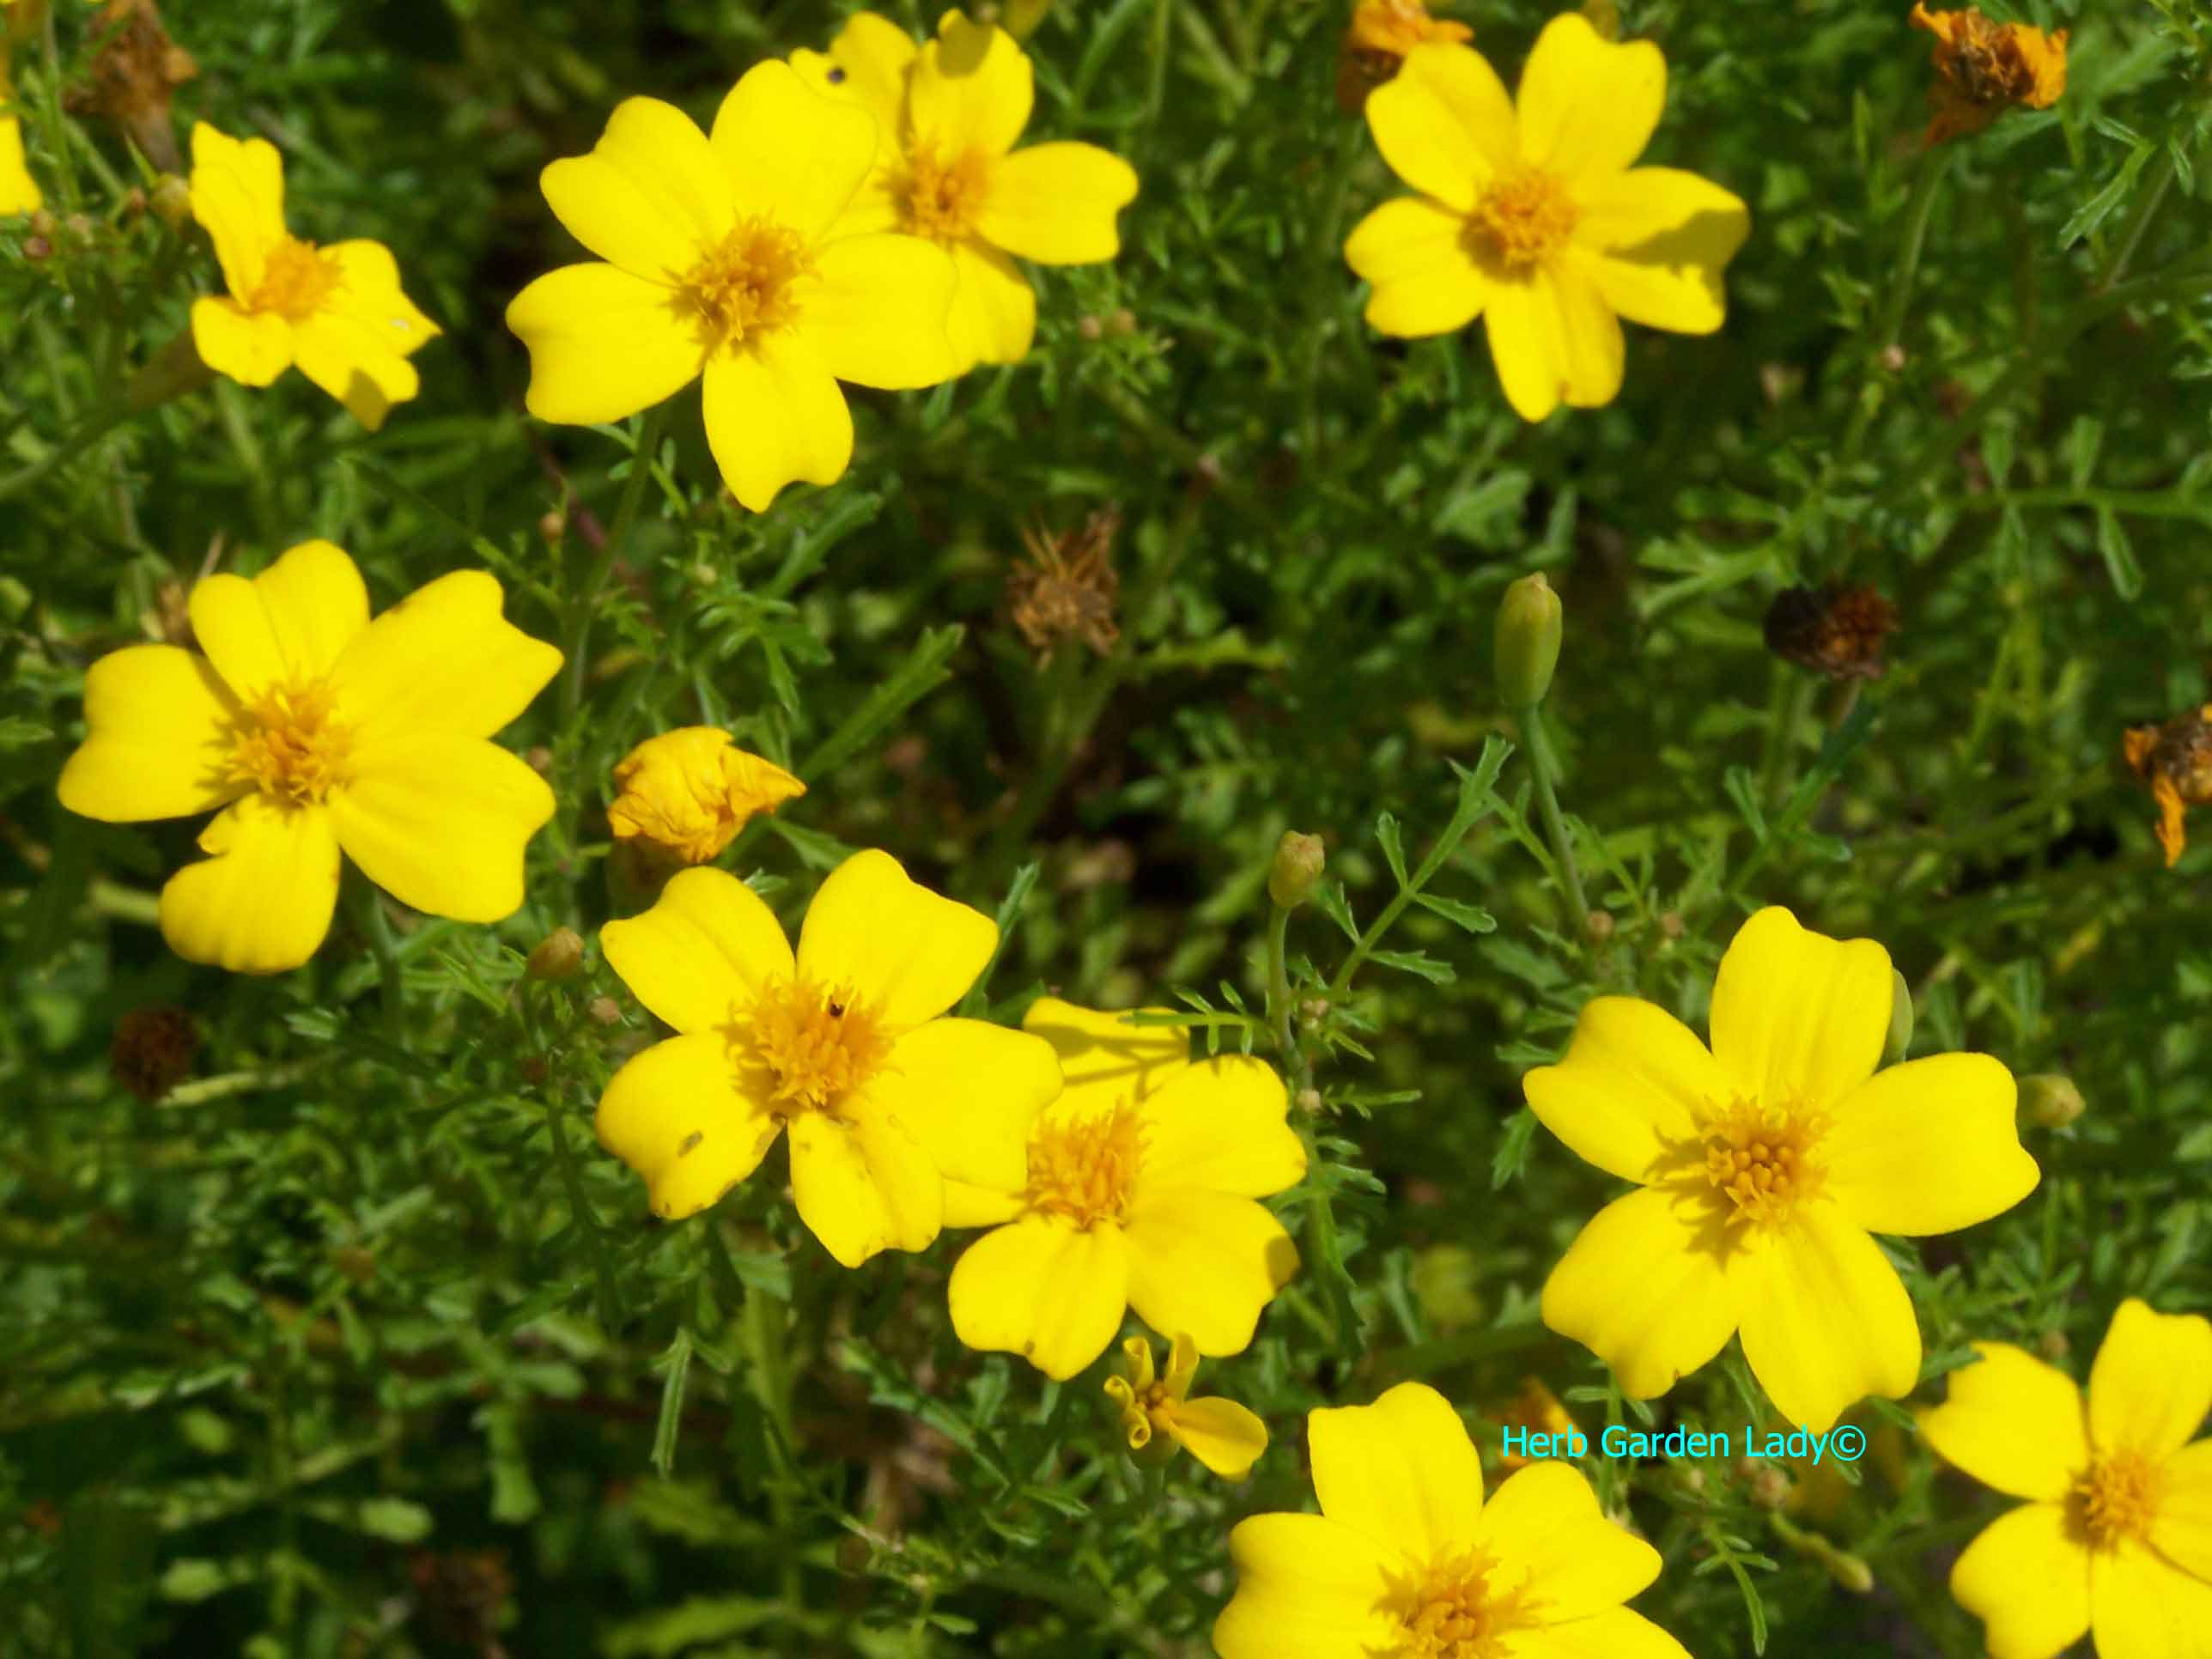 Lemon Gem (Tagetes tenuifolia) marigolds are edible flowers.